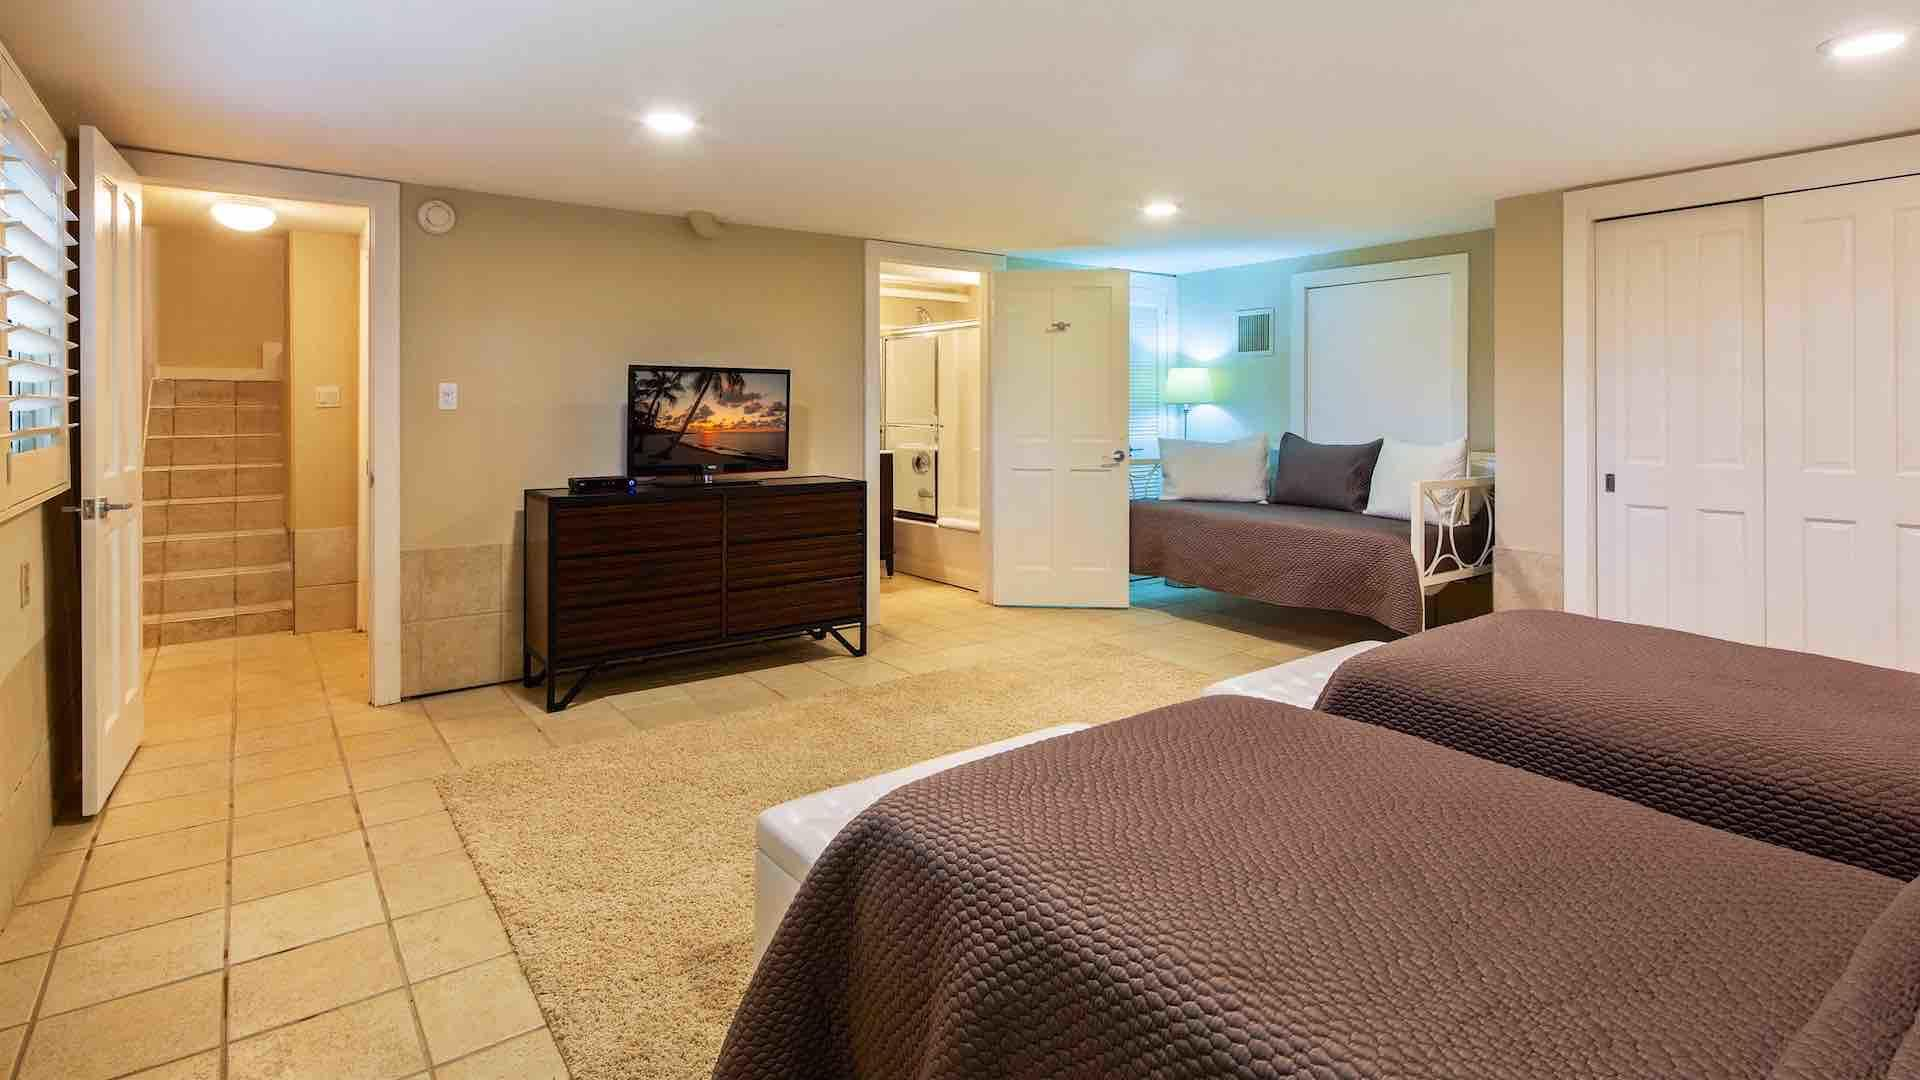 The fourth bedroom also has two twin beds that will convert to a King bed...